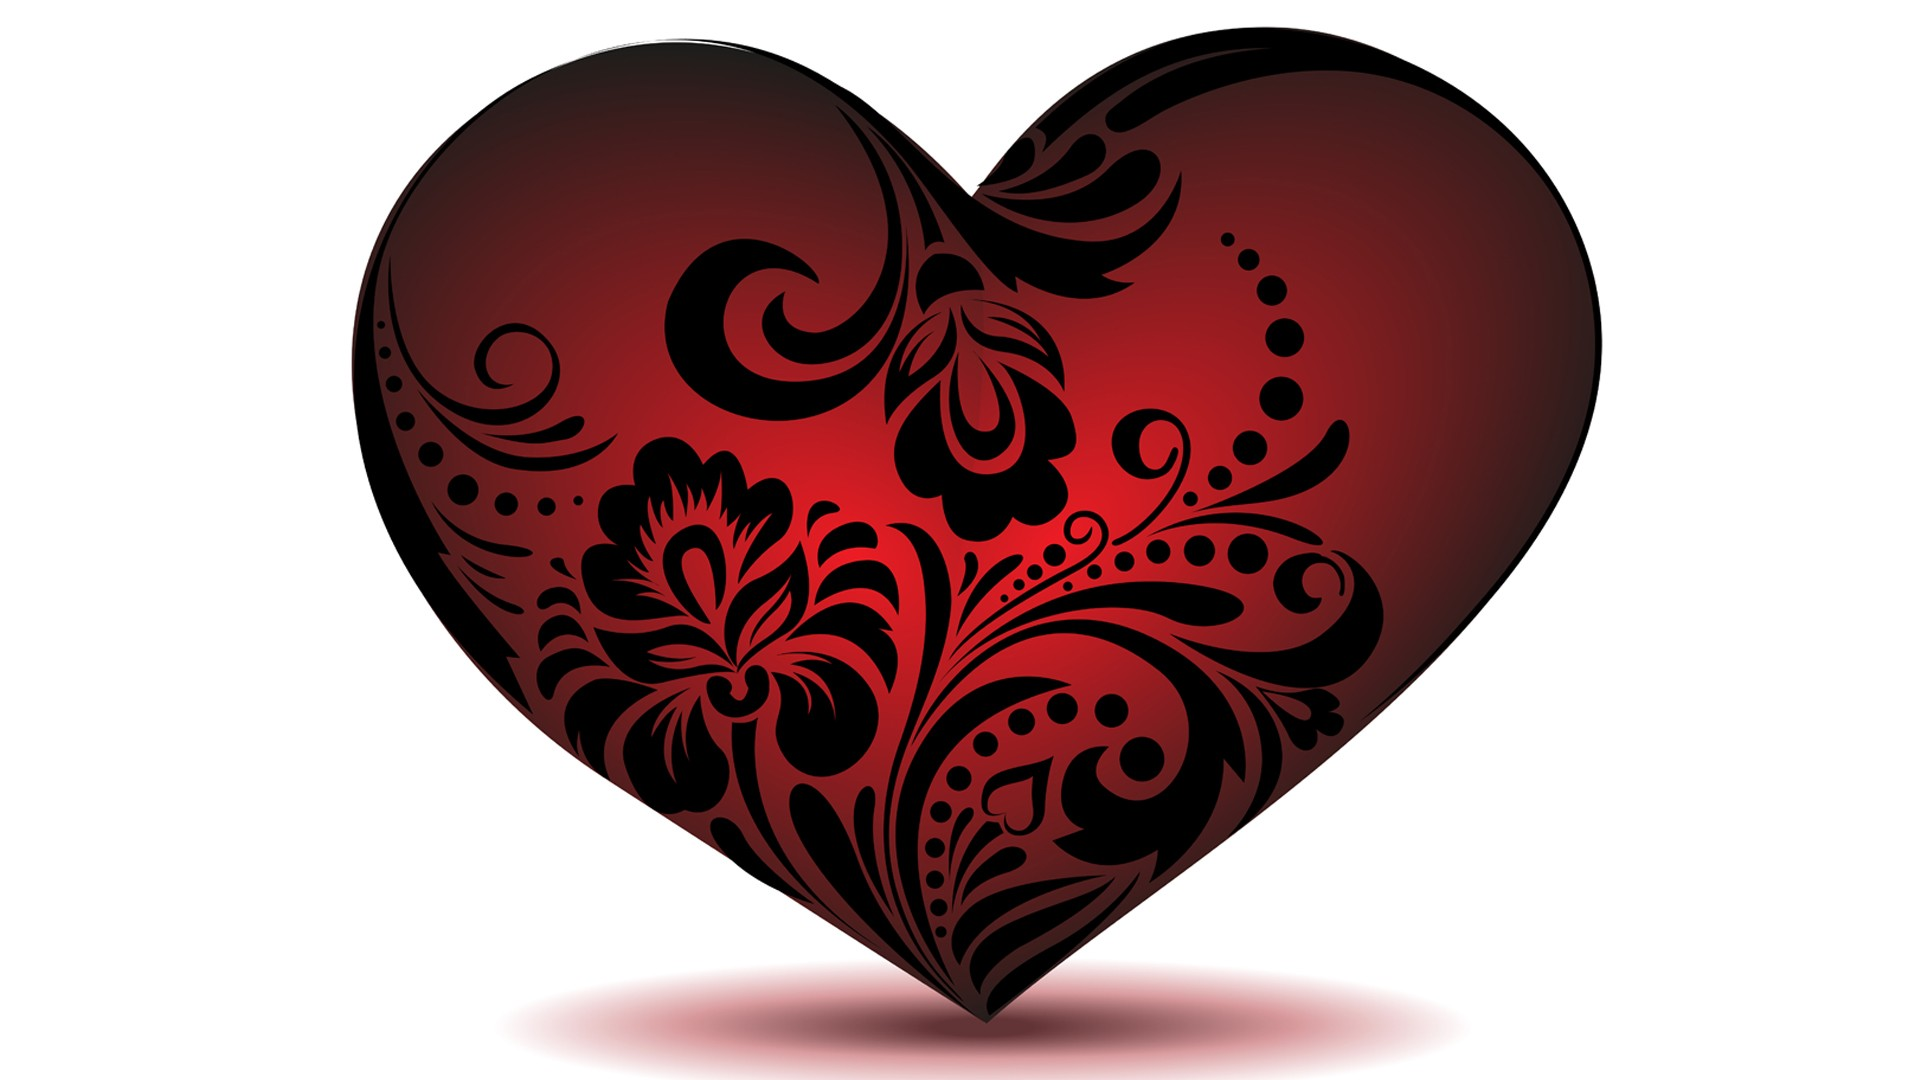 Heart wallpapers high quality download free - Heart to heart wallpaper ...